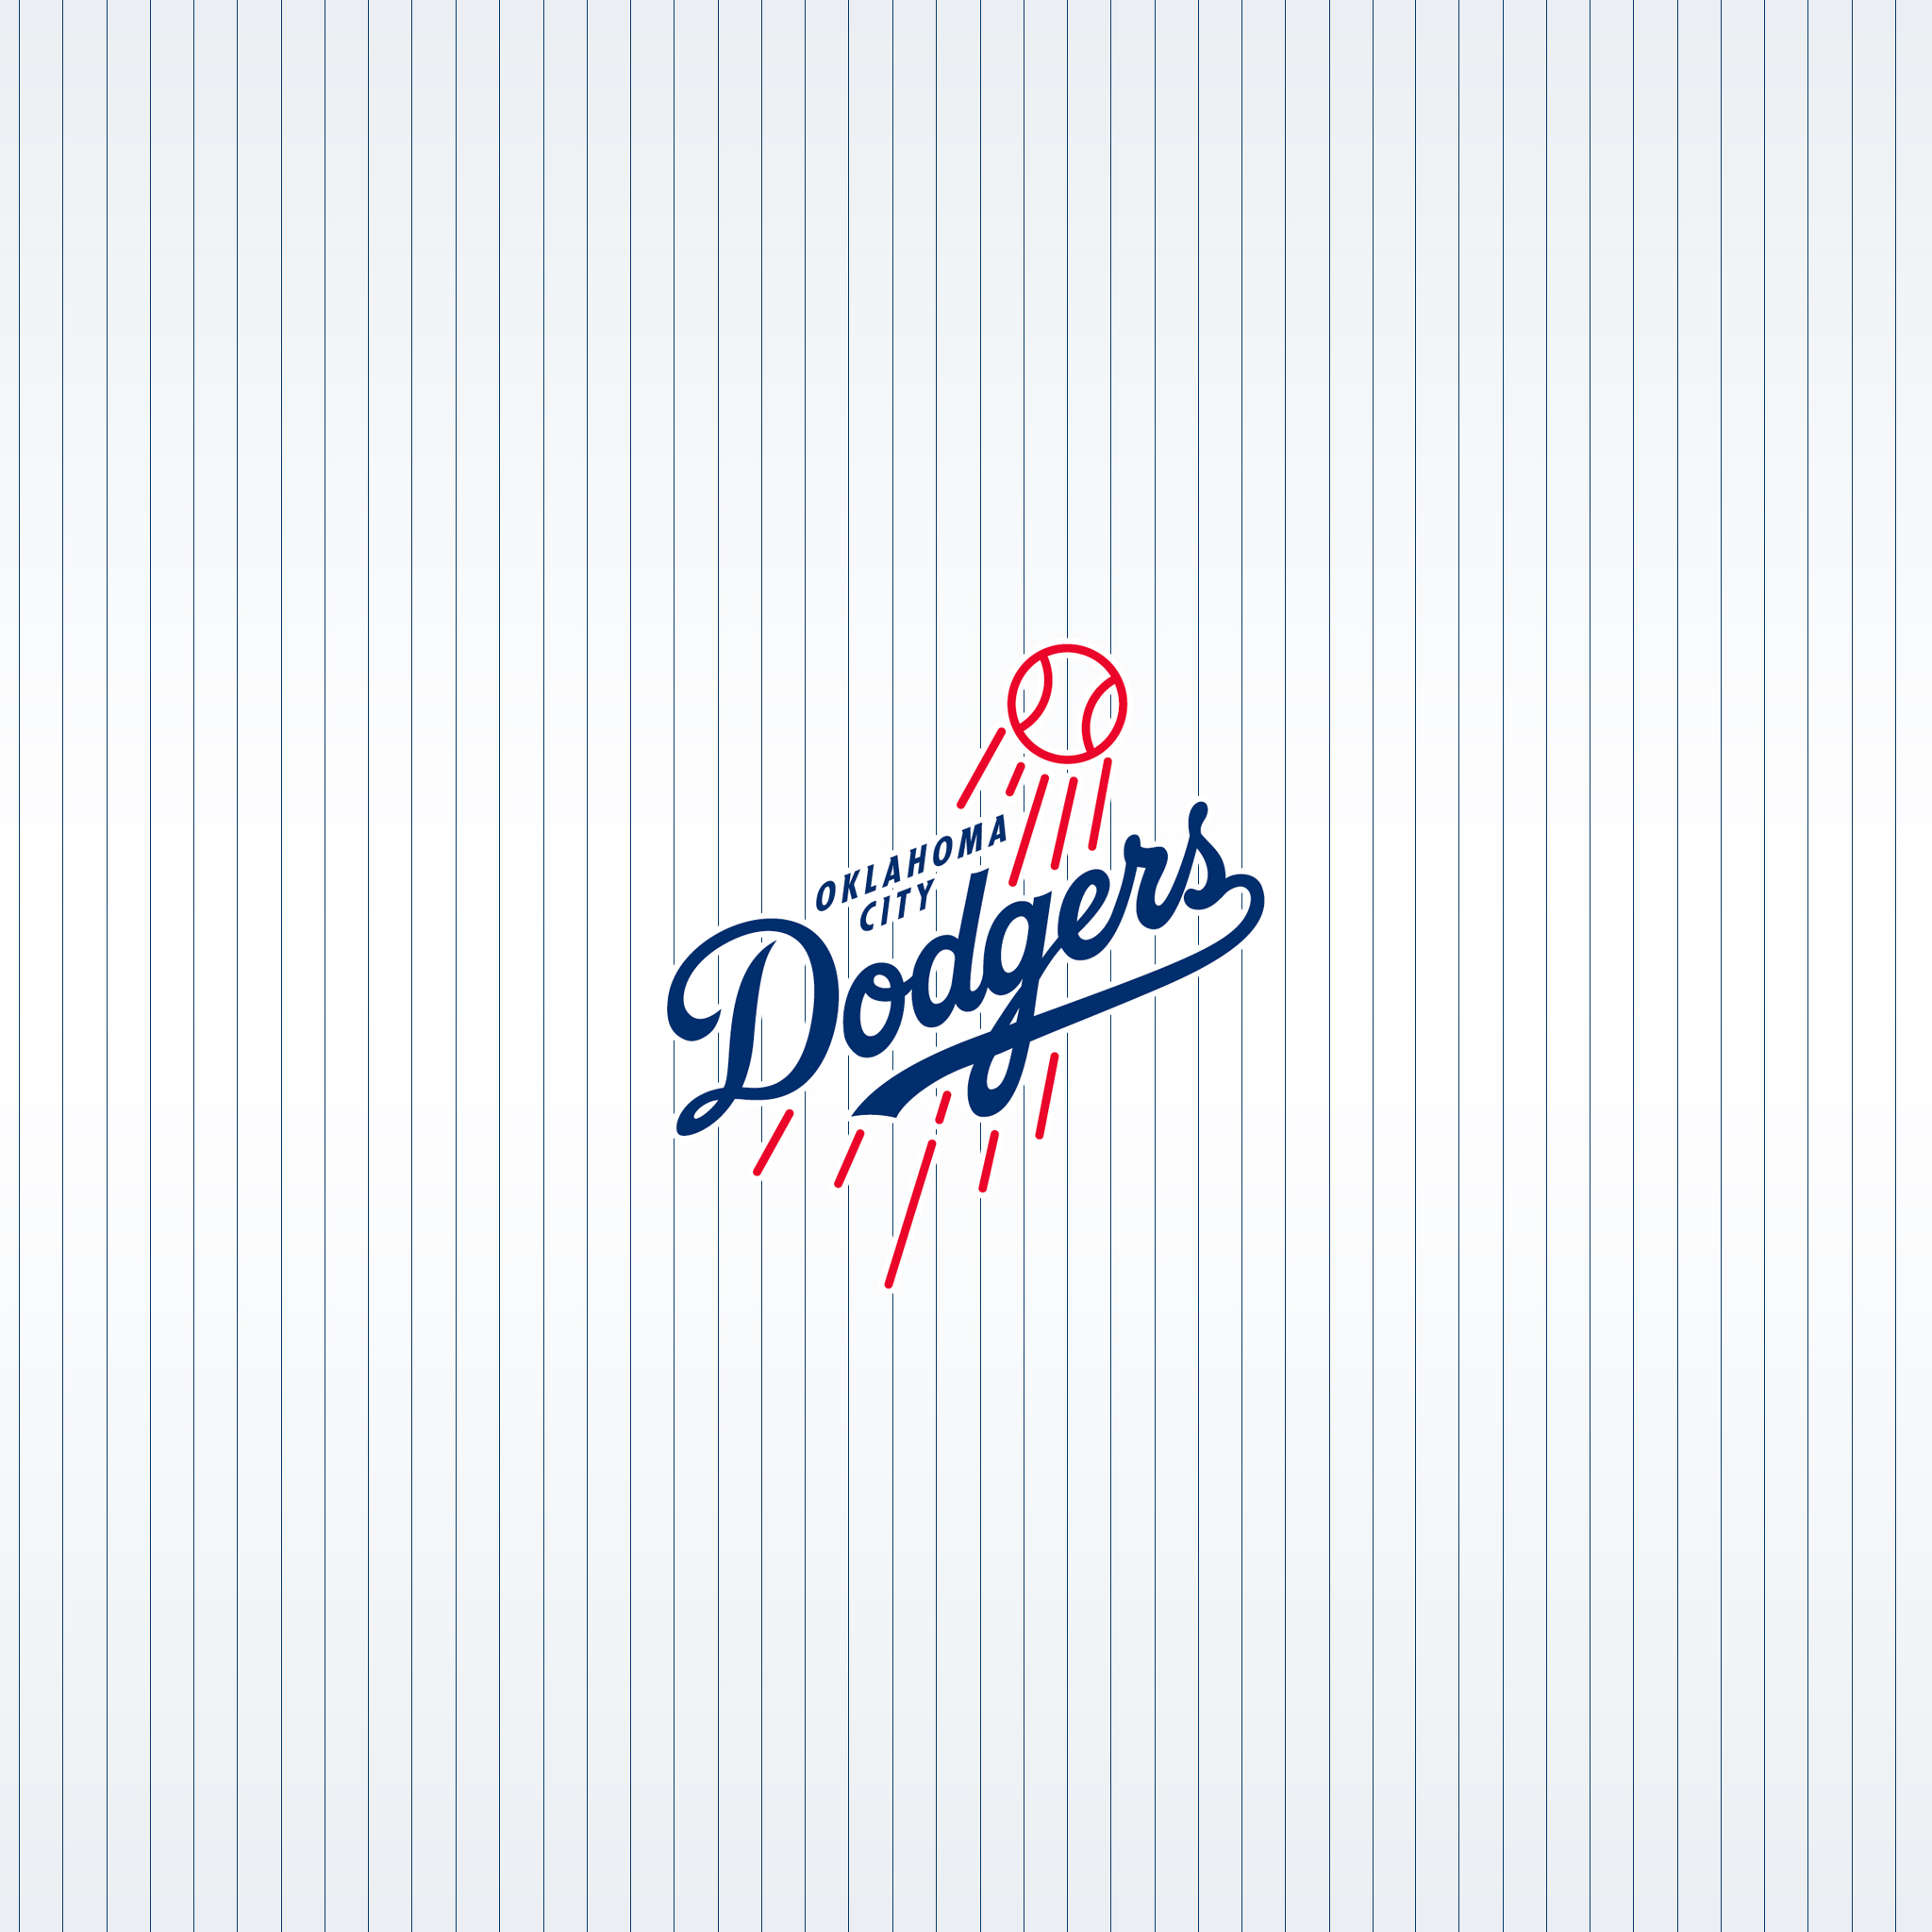 La Dodgers Iphone Wallpaper The Okc Dodgers From The King S Pen